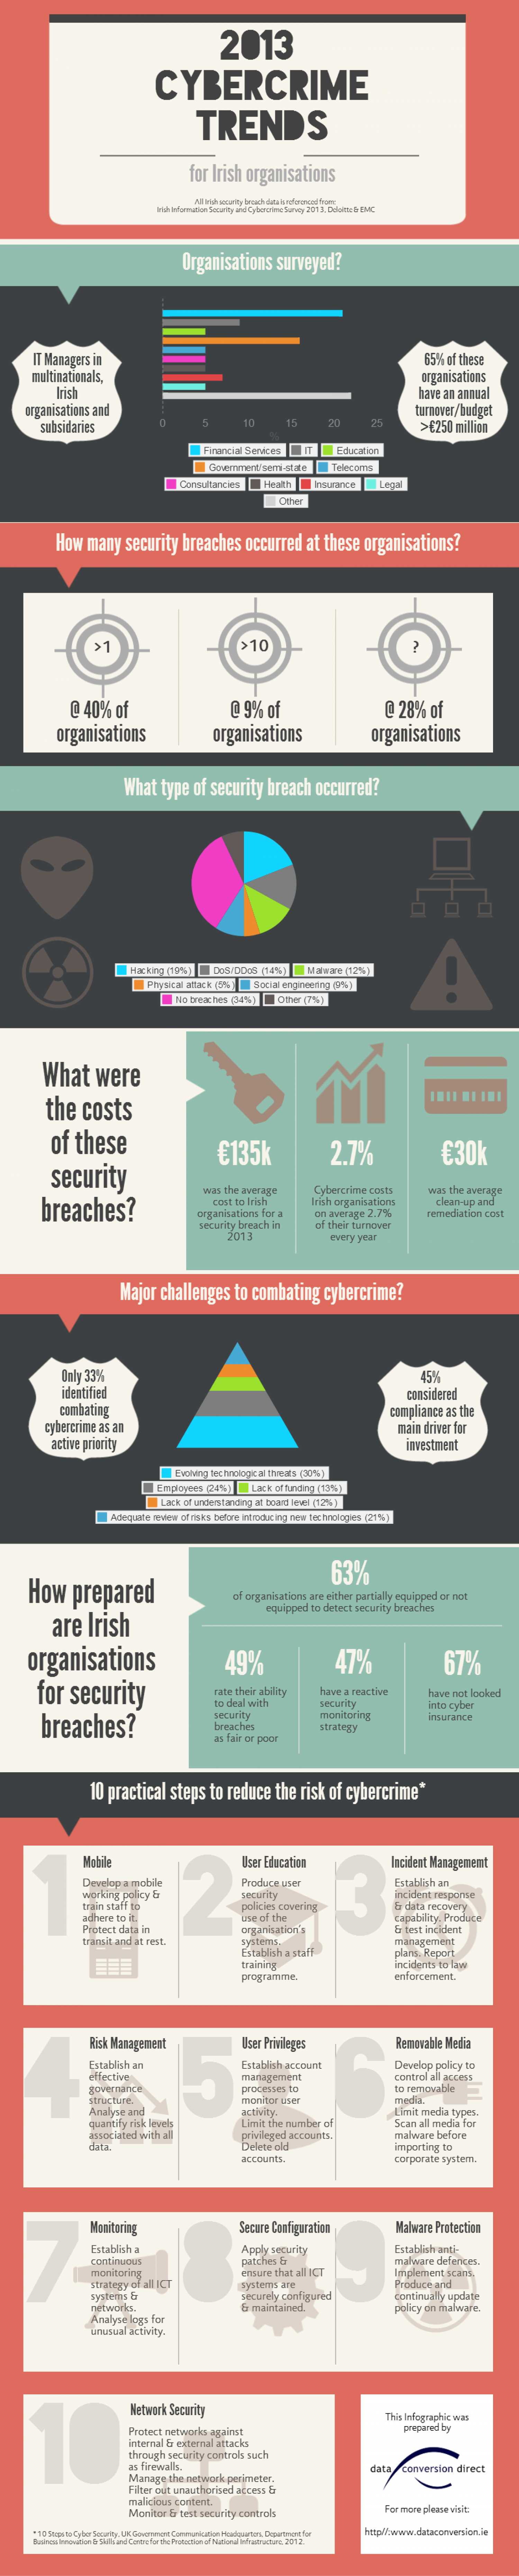 2013 Cybercrime trends for Irish organisations Infographic